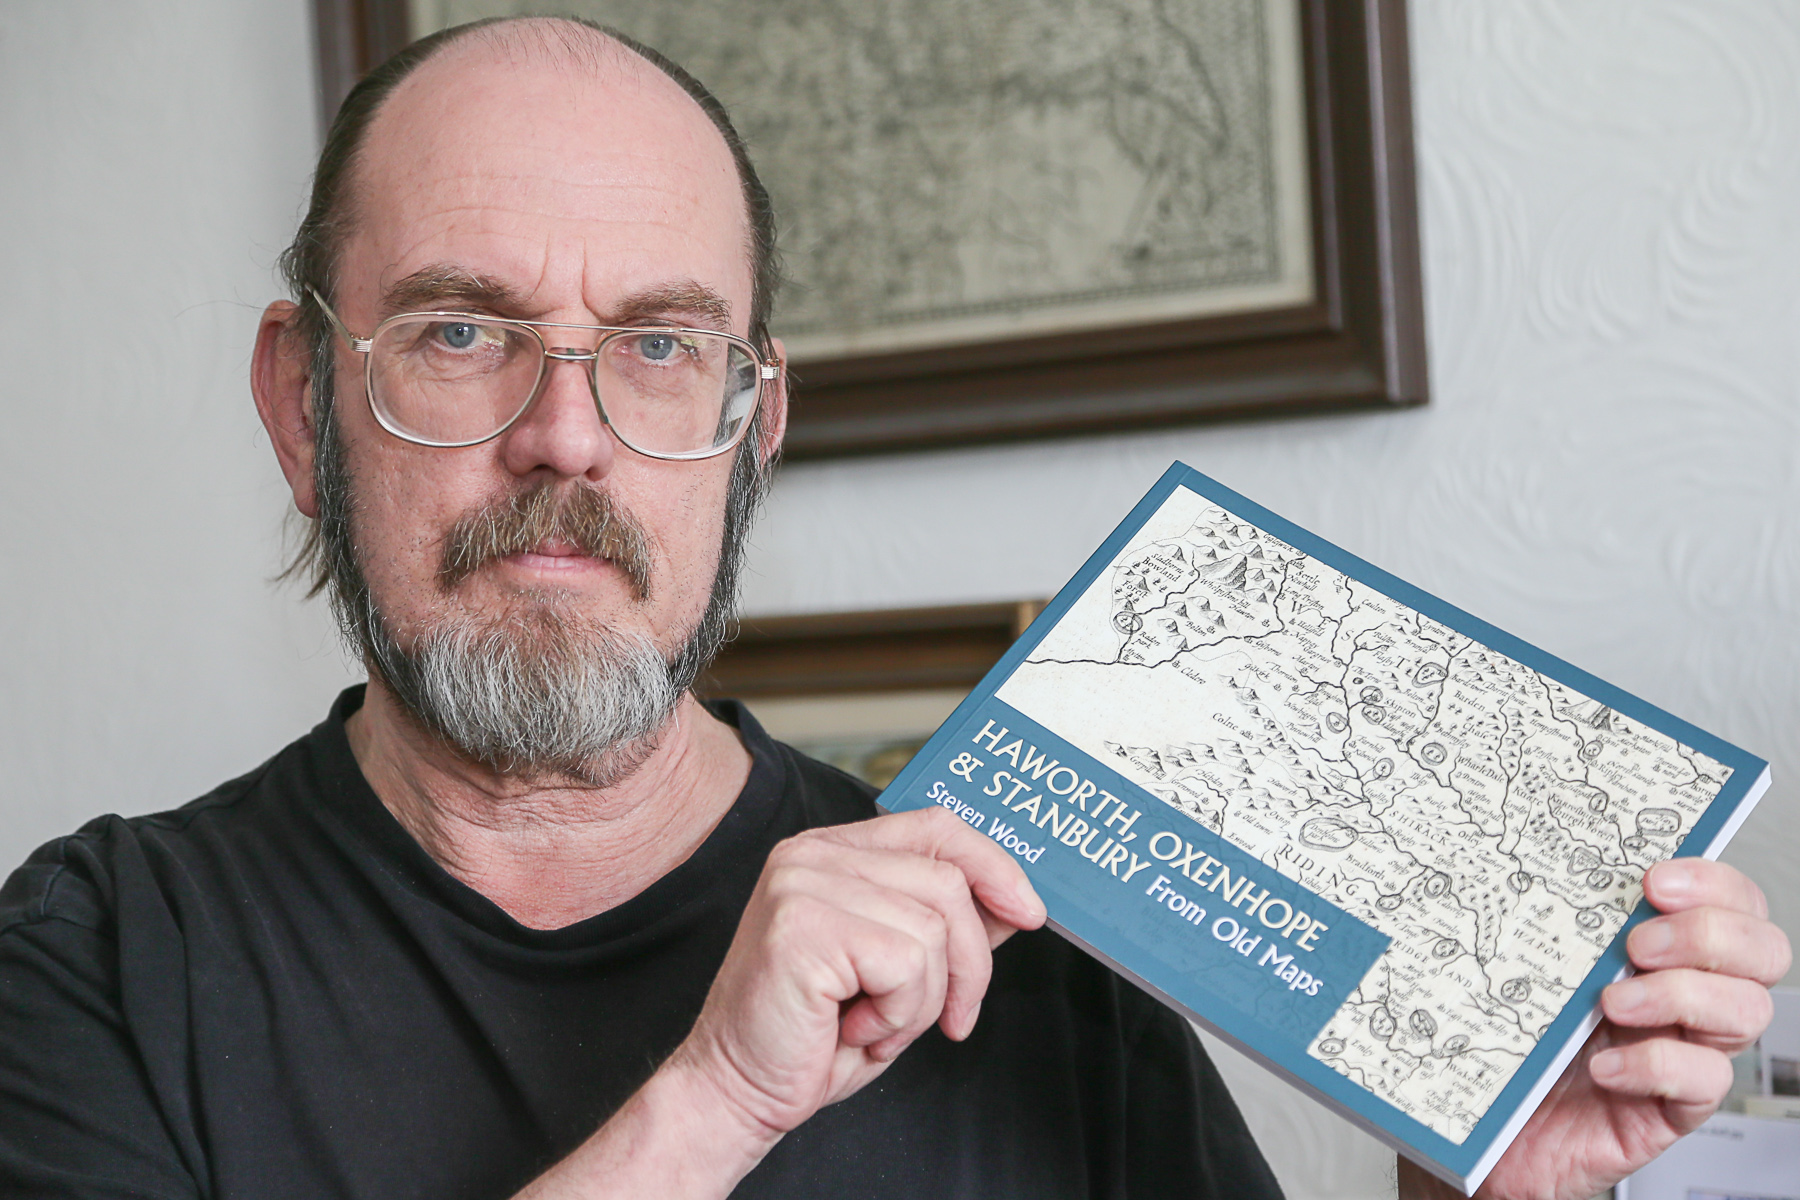 Book maps out history of Haworth